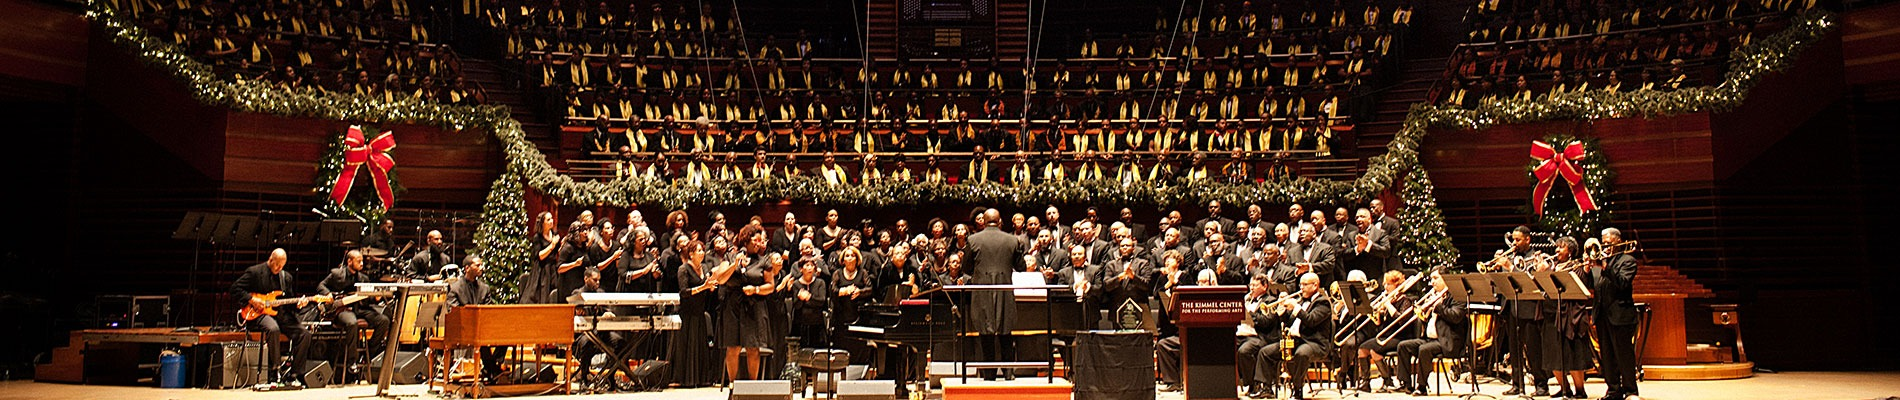 Choirs perform in Verizon Hall at the Kimmel Center for A Soulful Christmas